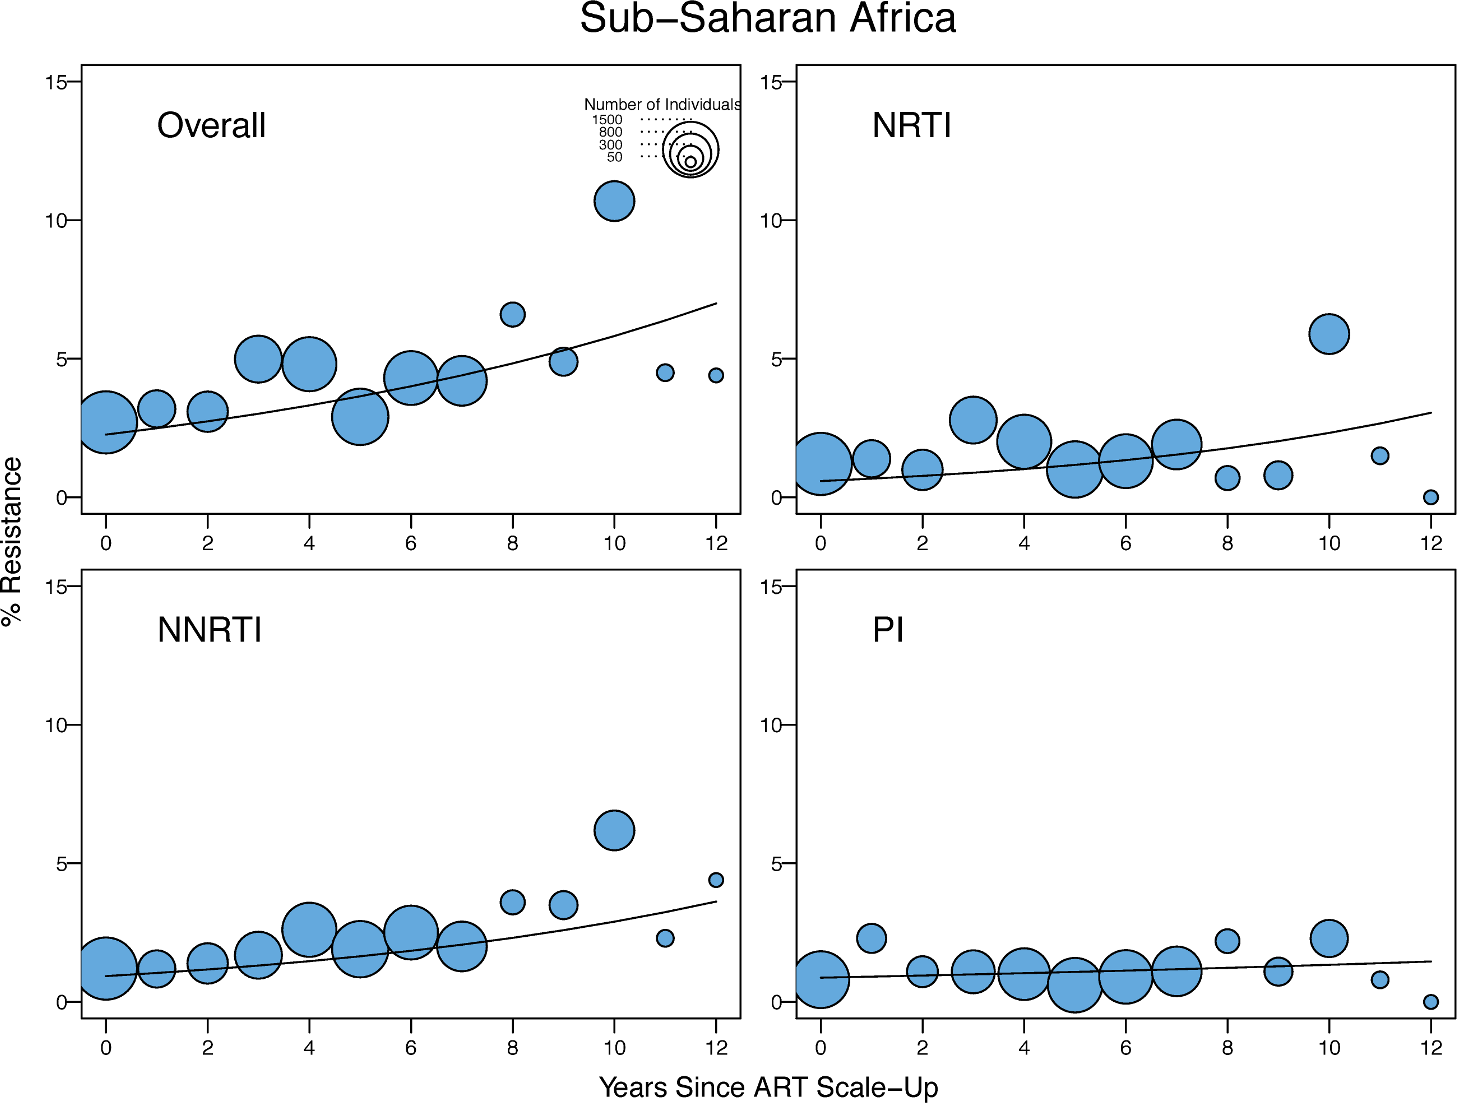 Temporal trends in the yearly proportion of individuals having one or more surveillance drug-resistance mutations in sub-Saharan Africa.